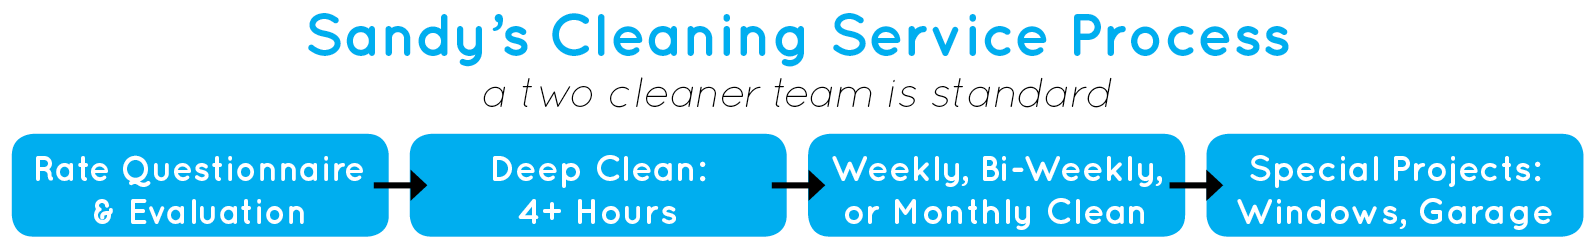 cleaning service process